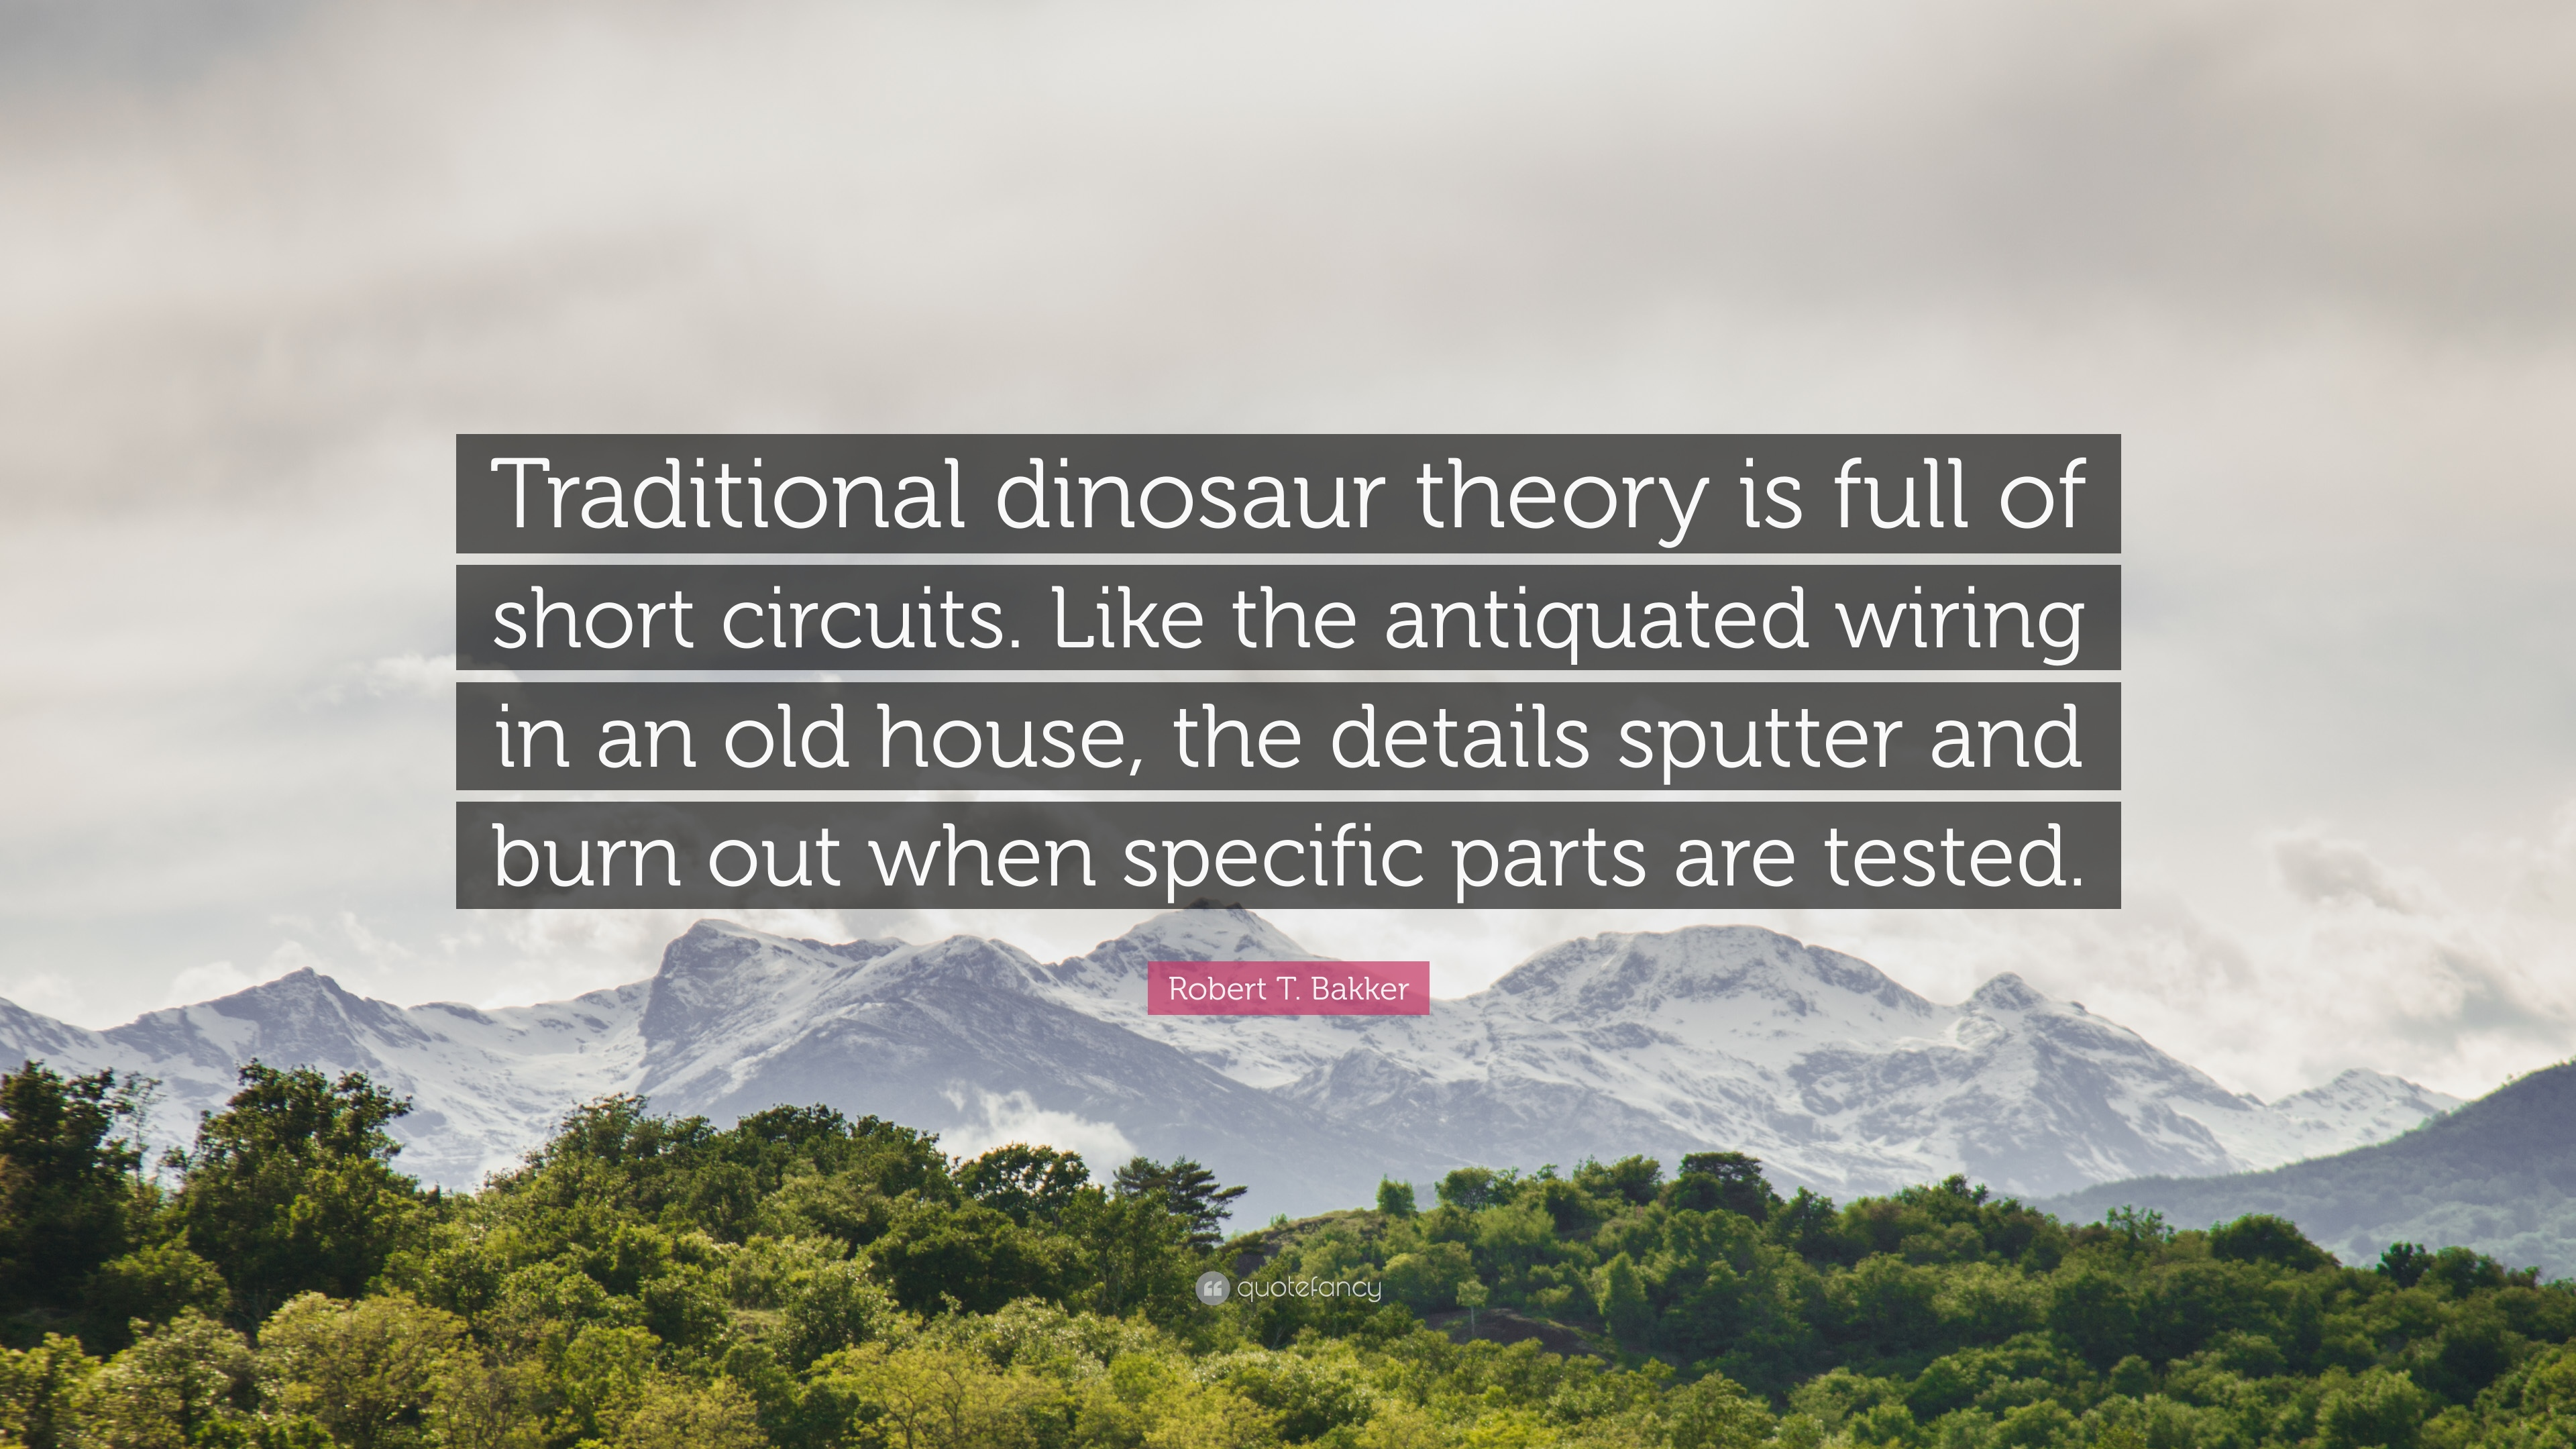 Robert T Bakker Quote Traditional Dinosaur Theory Is Full Of Wiring Old House 7 Wallpapers